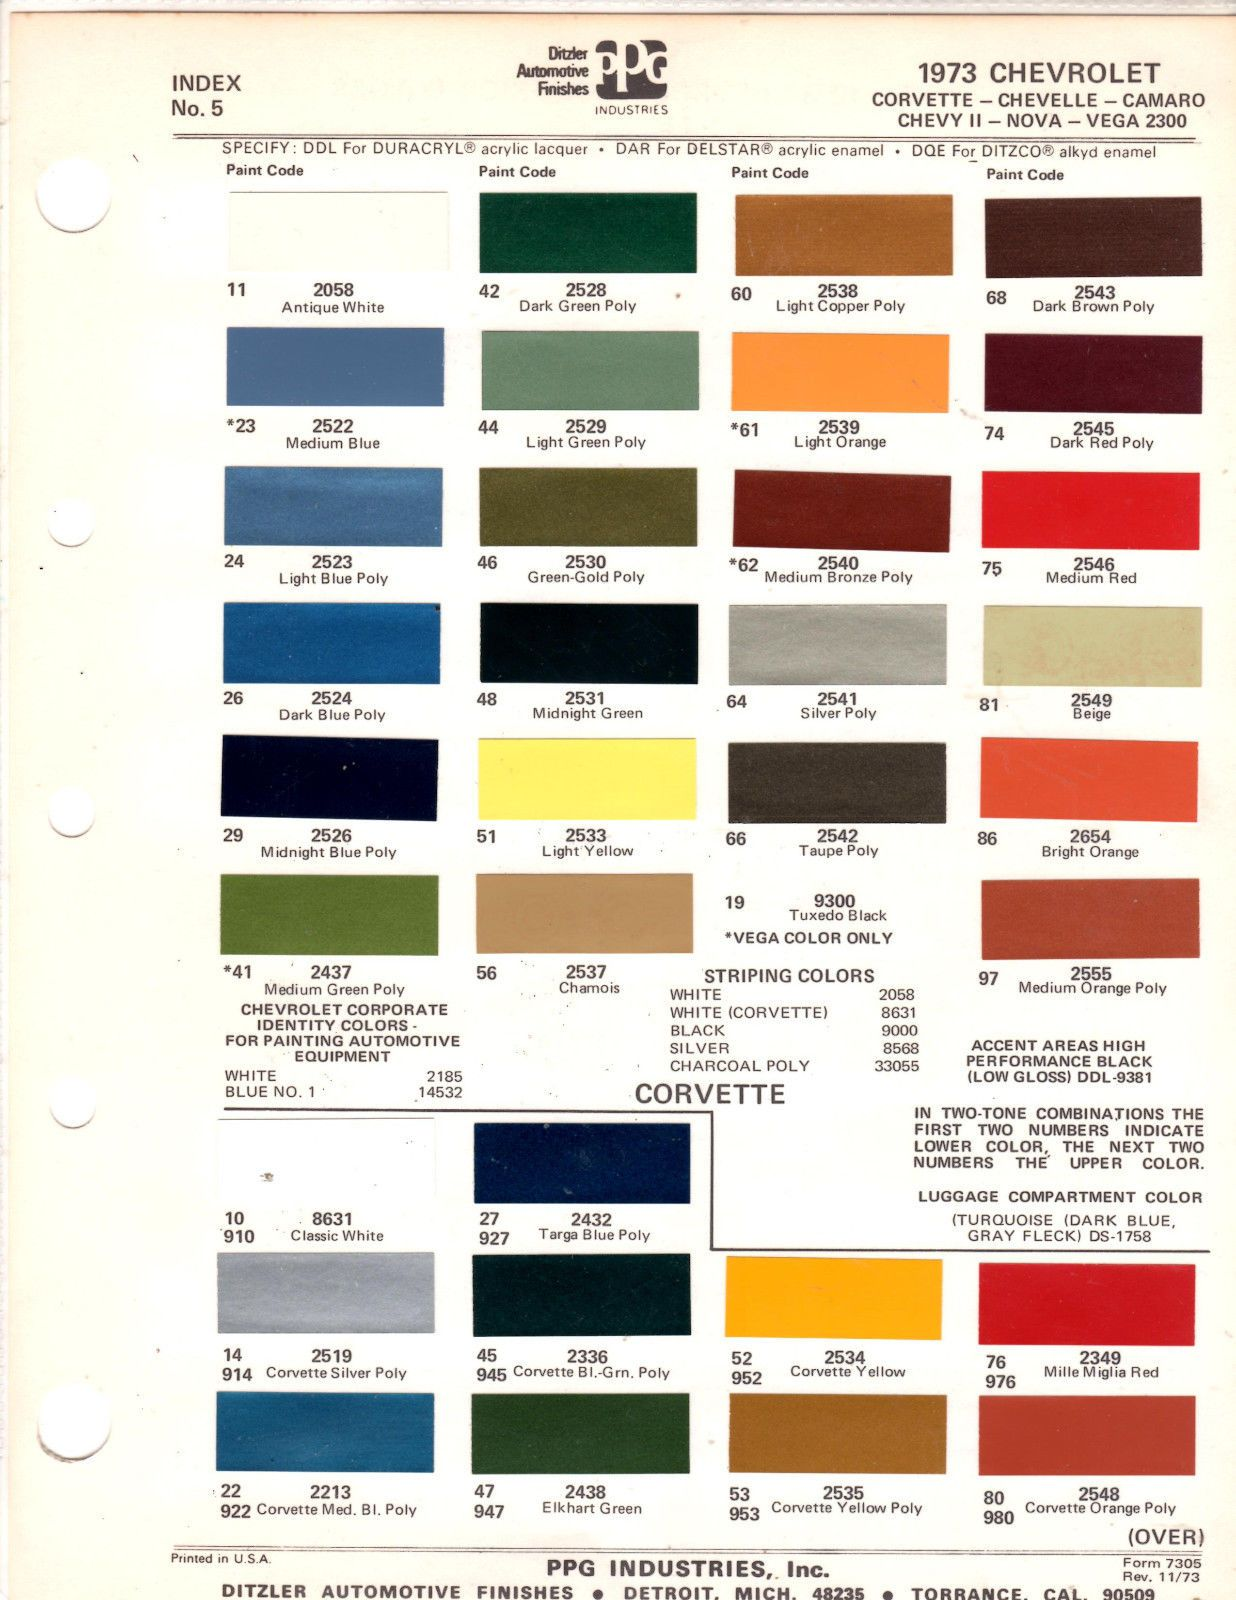 1973 chevrolet corvette camaro chevelle caprice impala color chart for car paint 1973 chevrolet camaro nvjuhfo Images